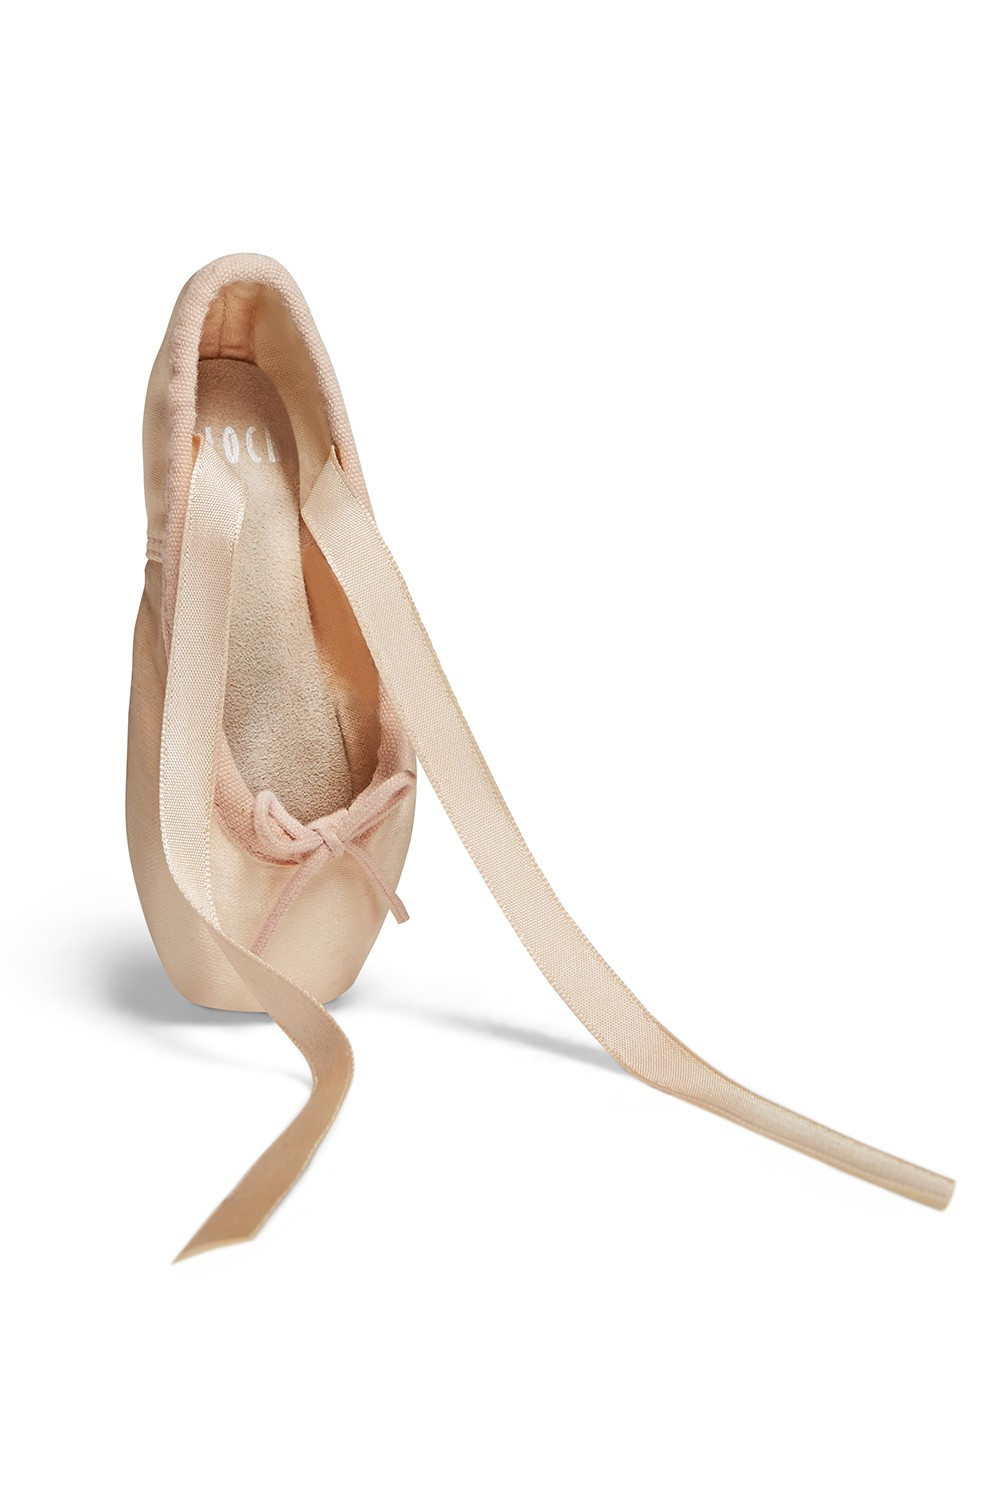 Decorative Pointe Shoe Dance Shoes Accessories